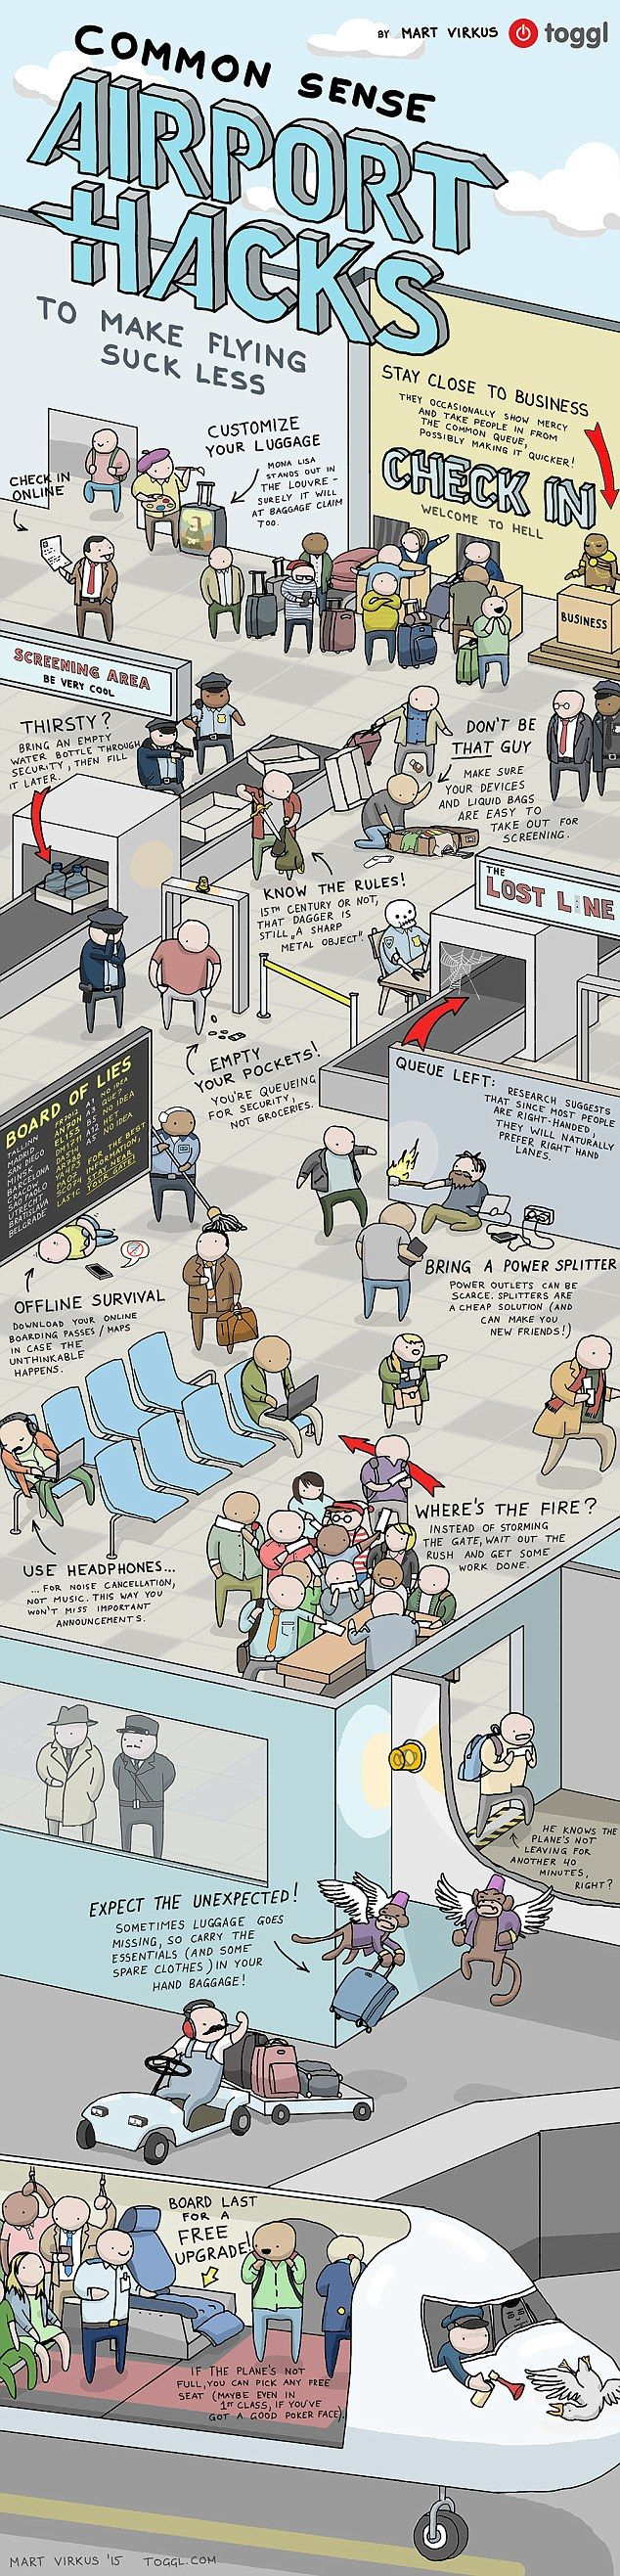 Toggl infographic reveals the travel hacks to breeze through the airport | Daily Mail Online